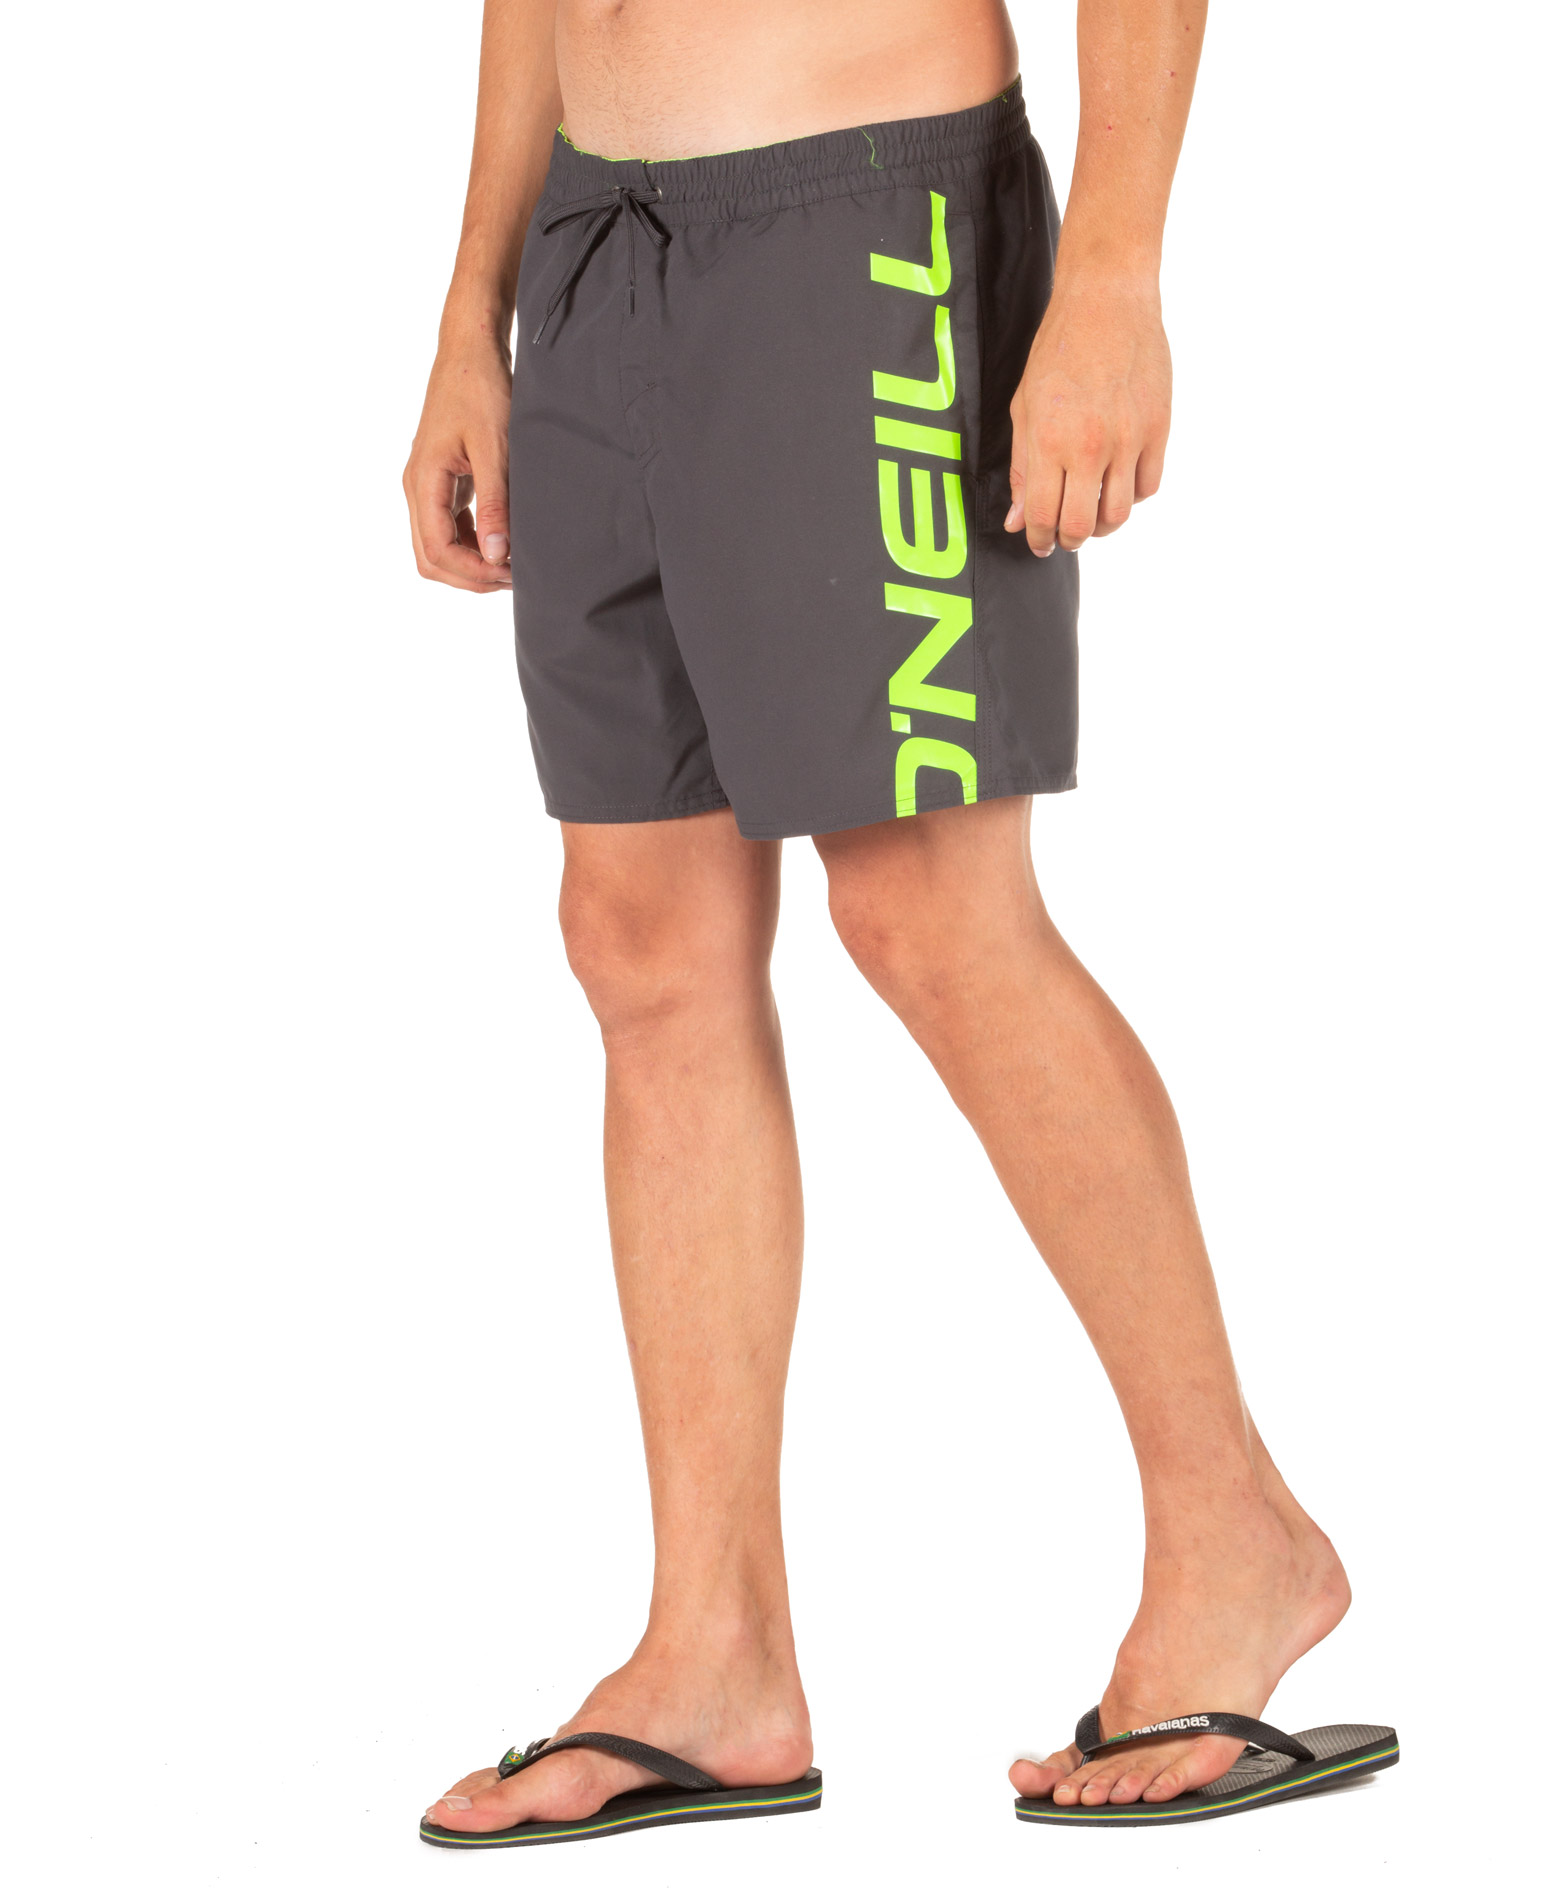 O'NEILL PM CALI SHORTS 9A3226-8026 Ανθρακί